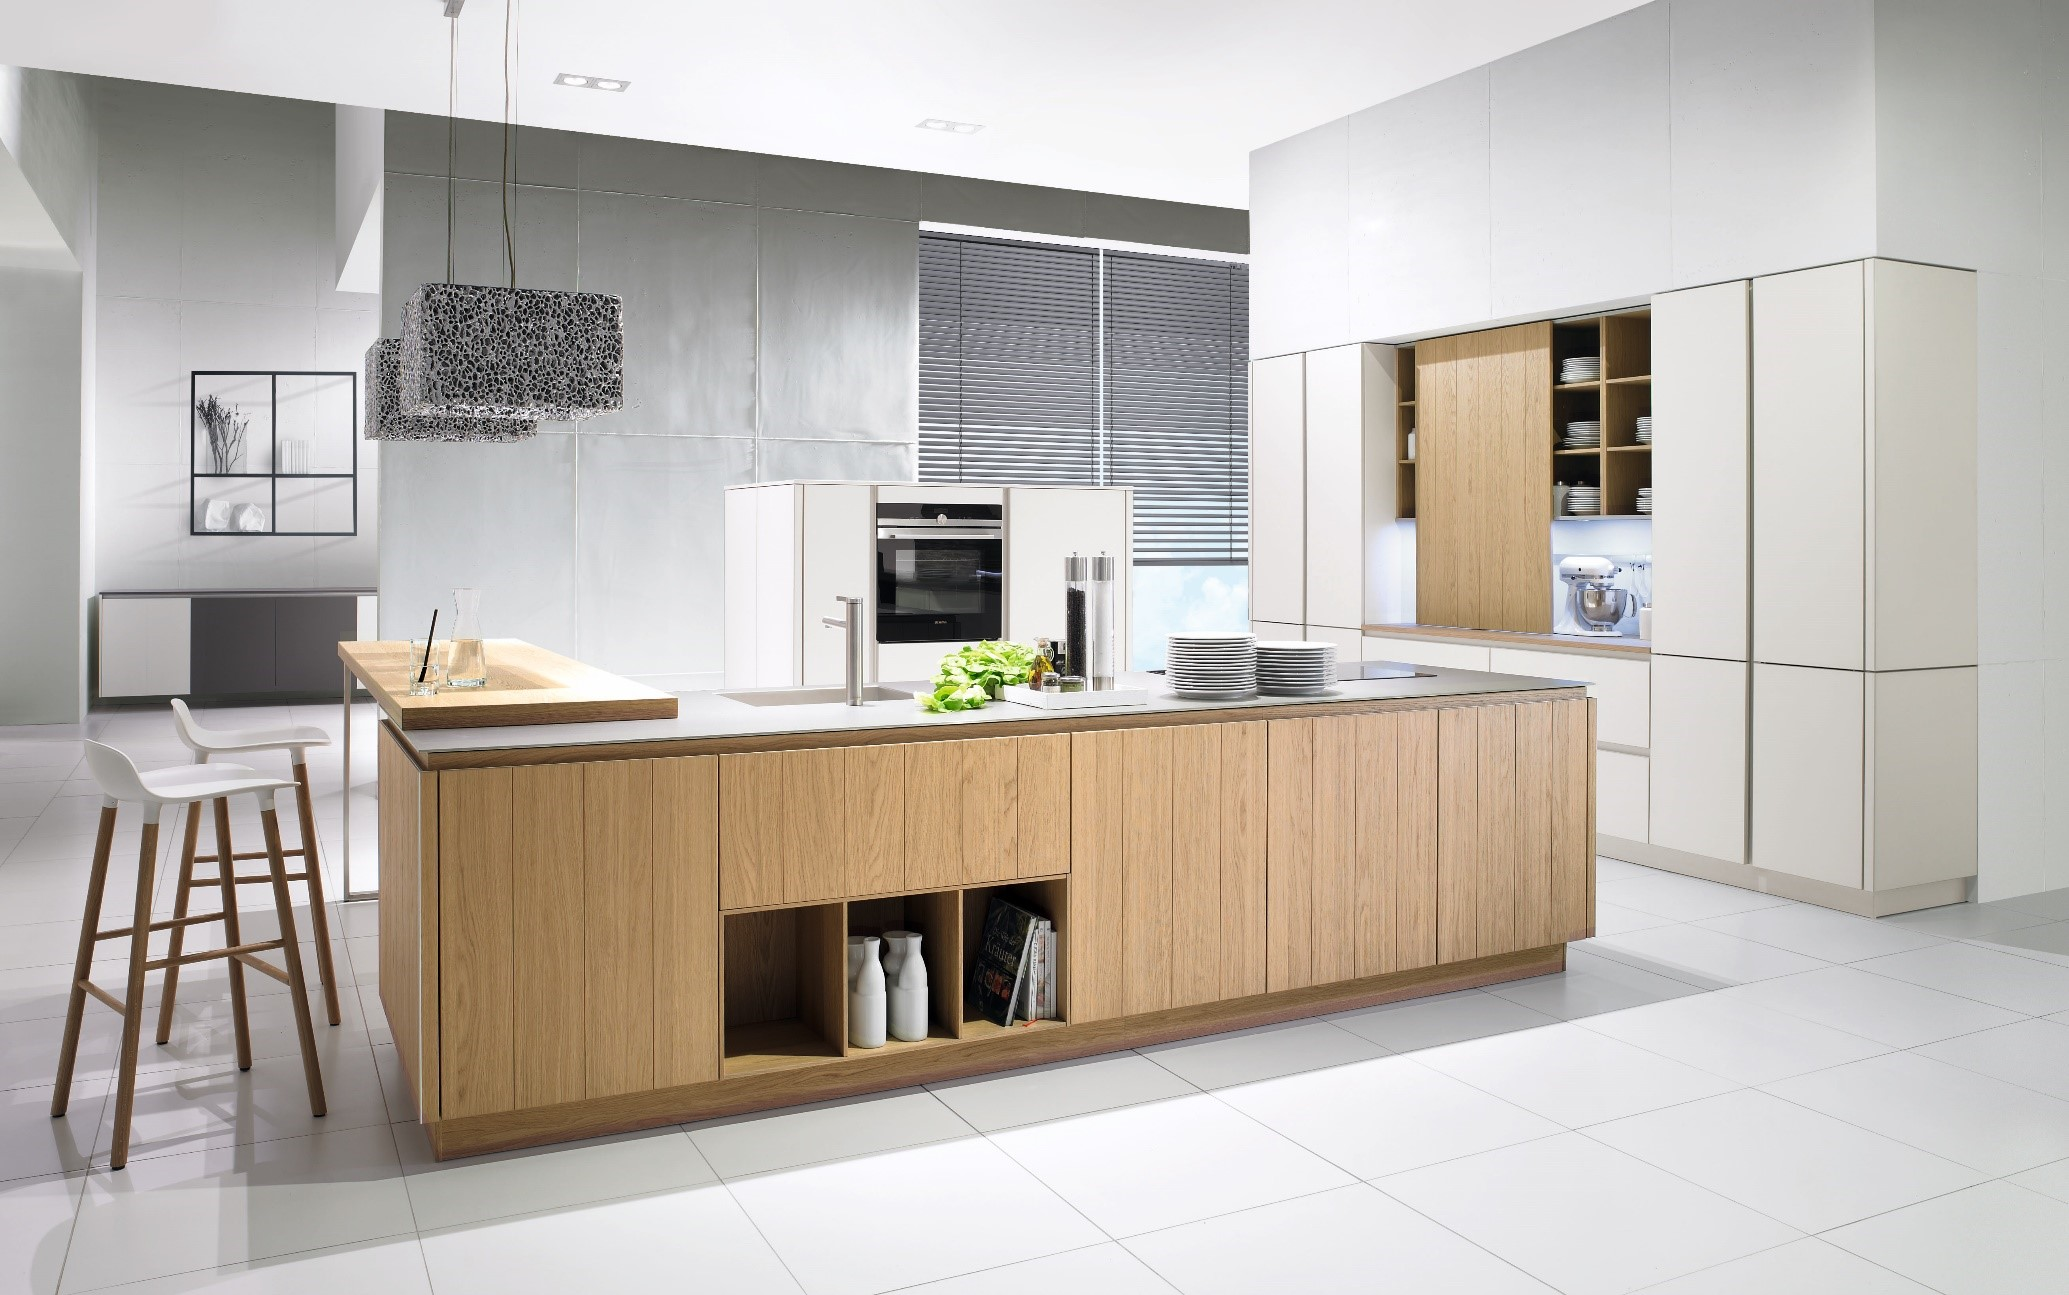 New kitchens Orpington and Bexley kitchens